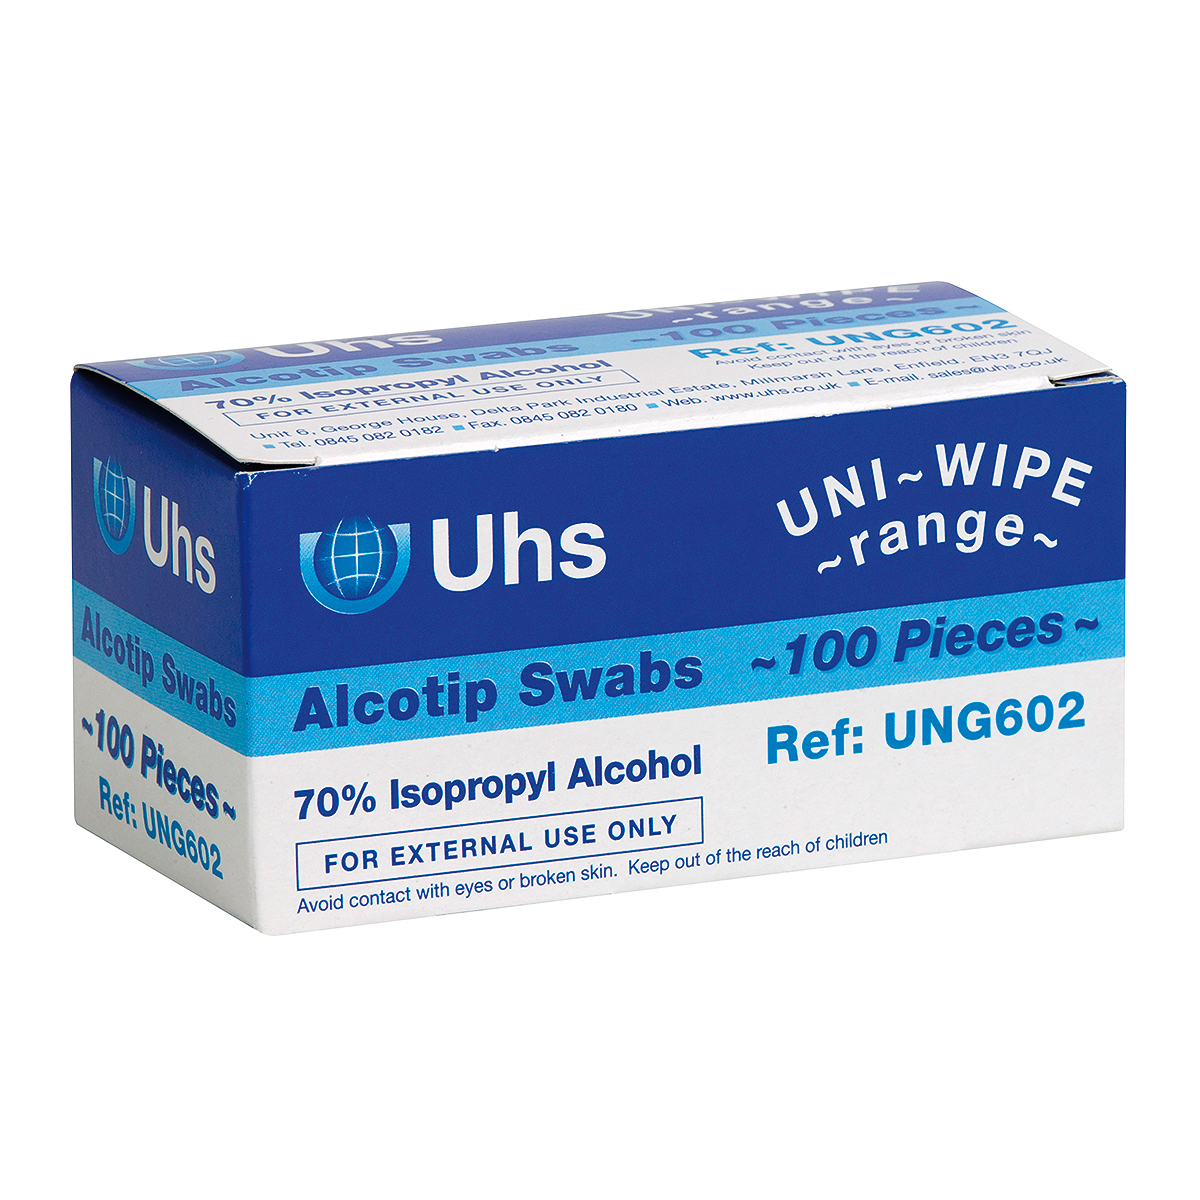 Box of 100 Alcotip Swabs